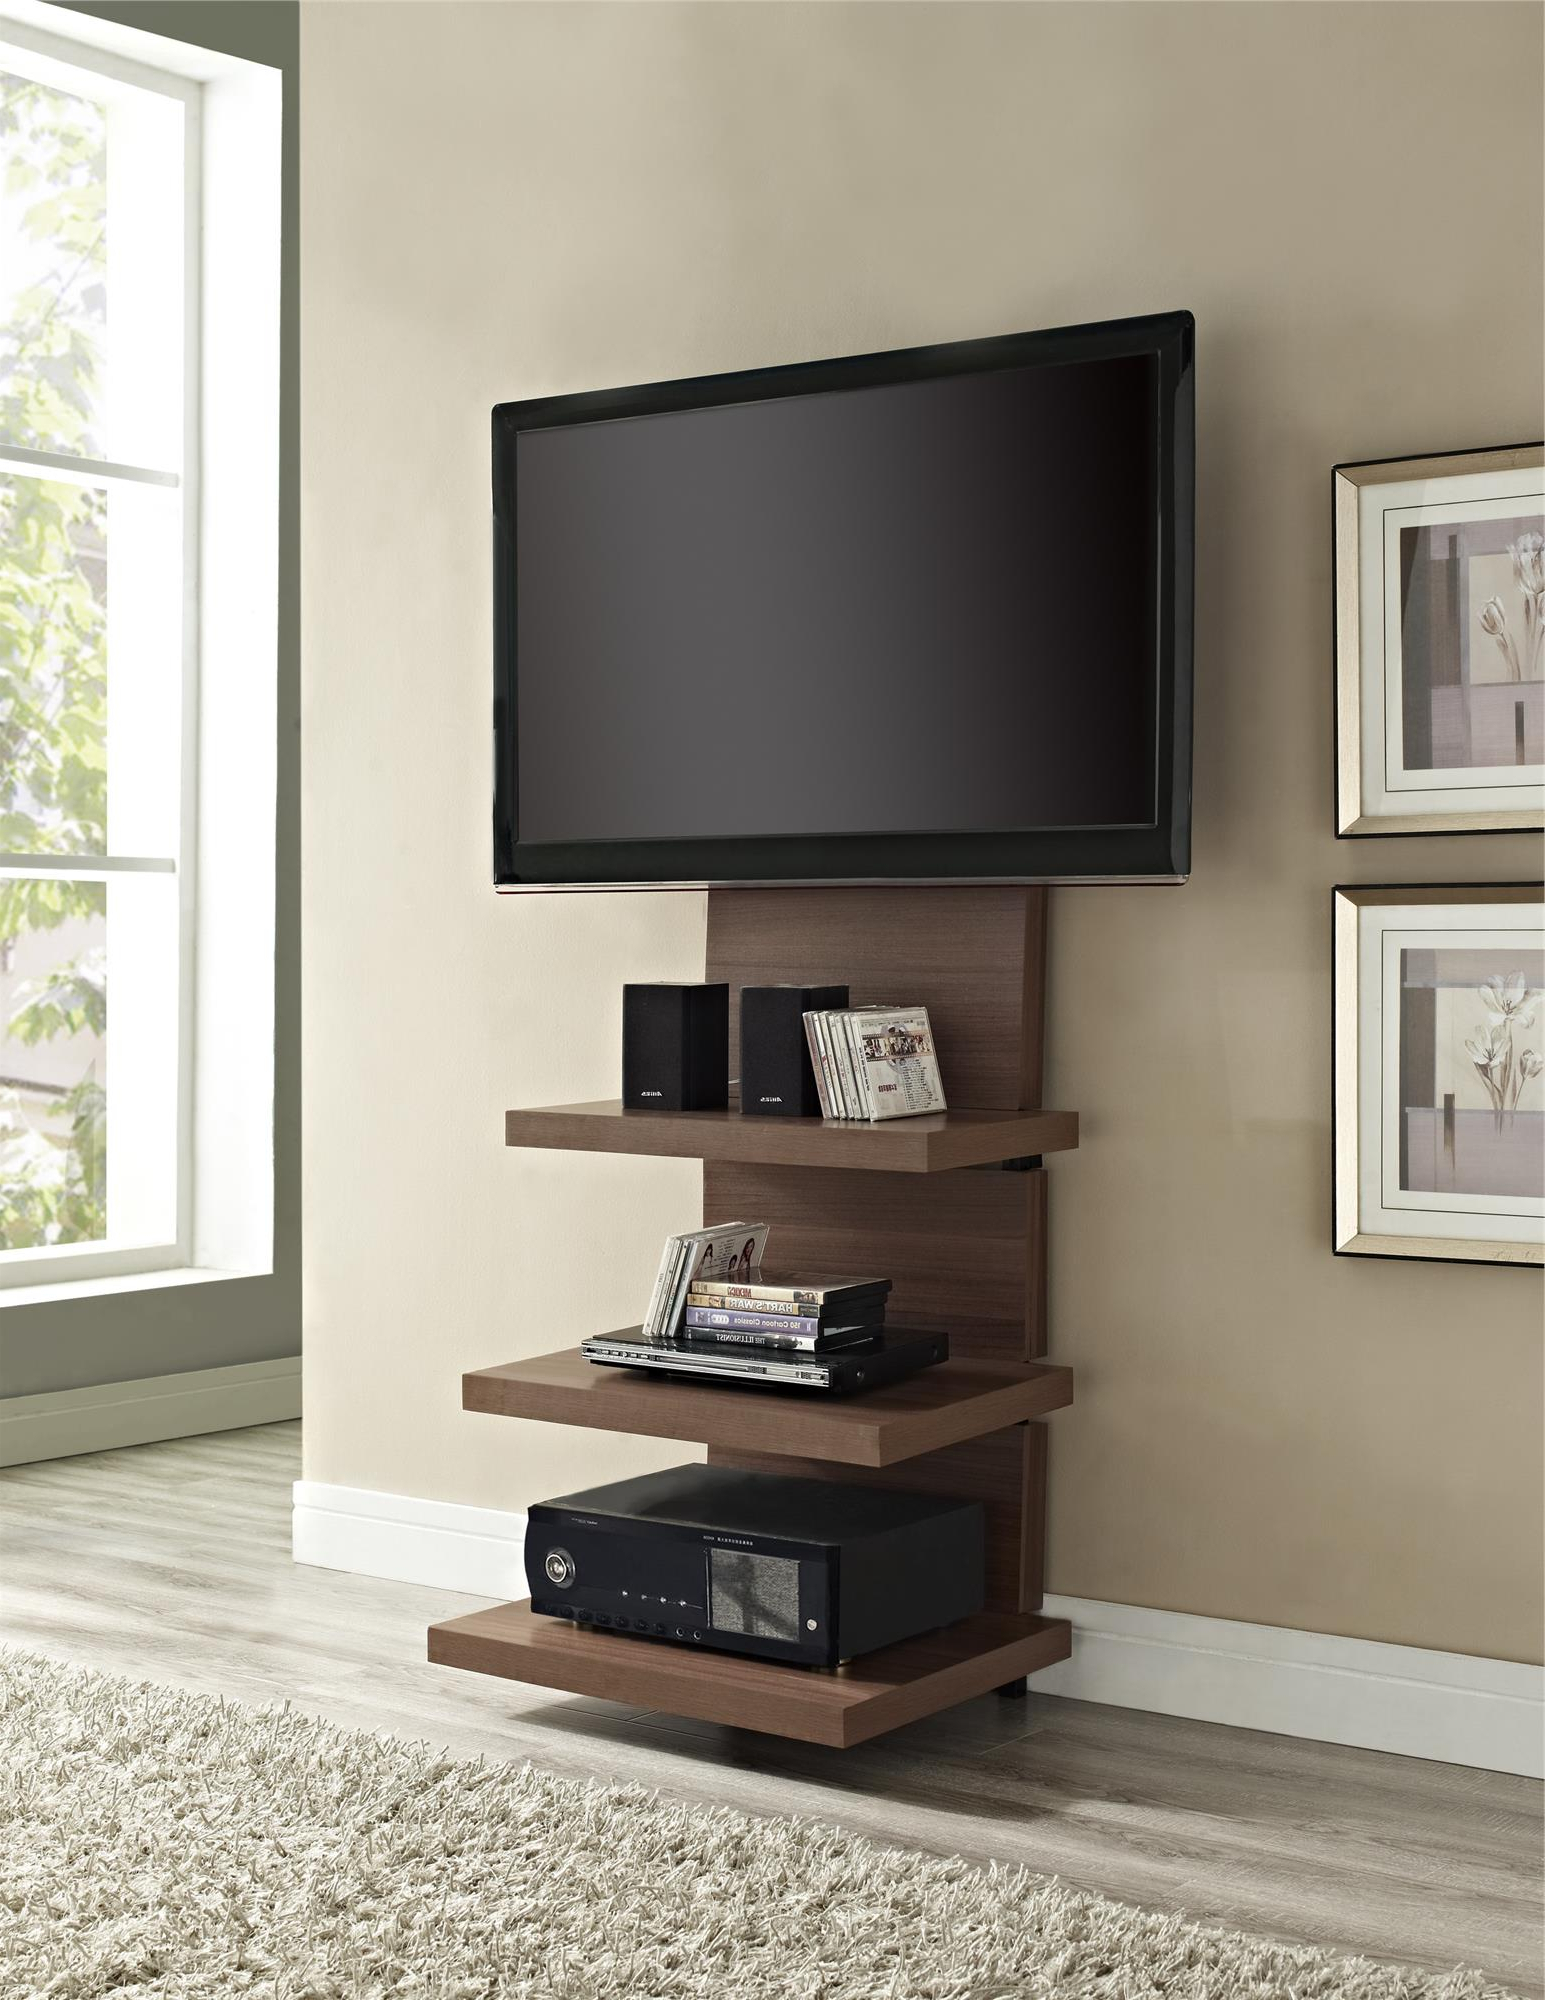 Preferred Unique Tv Stands For Flat Screens Throughout Tall Wood Wall Mounted Tv Stand With Shelves And Mount For Flat (Gallery 7 of 20)